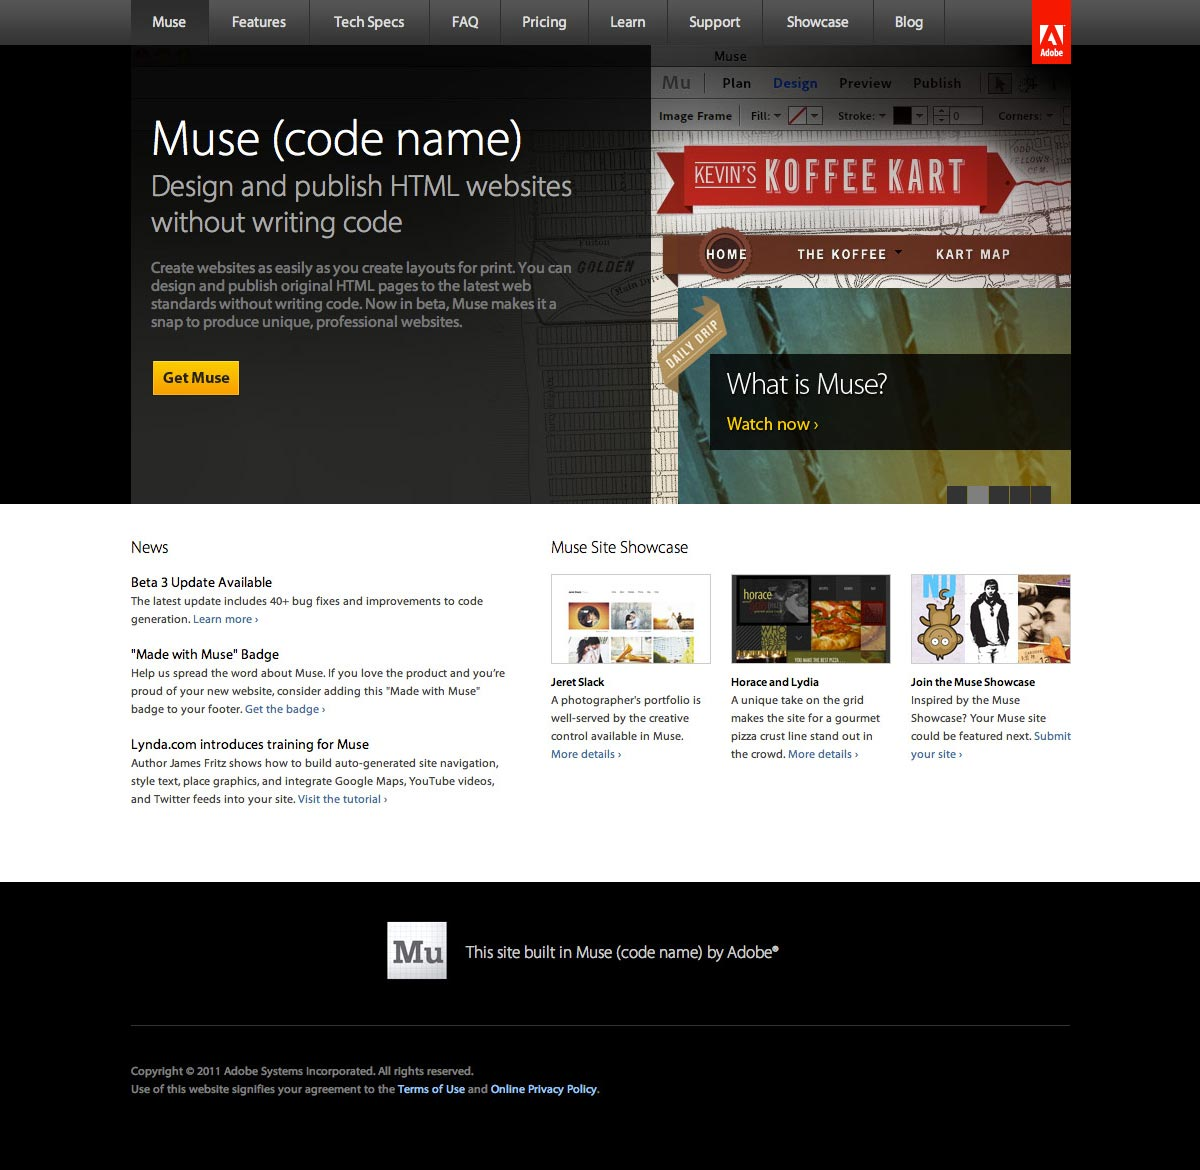 Adobe Muse | Home